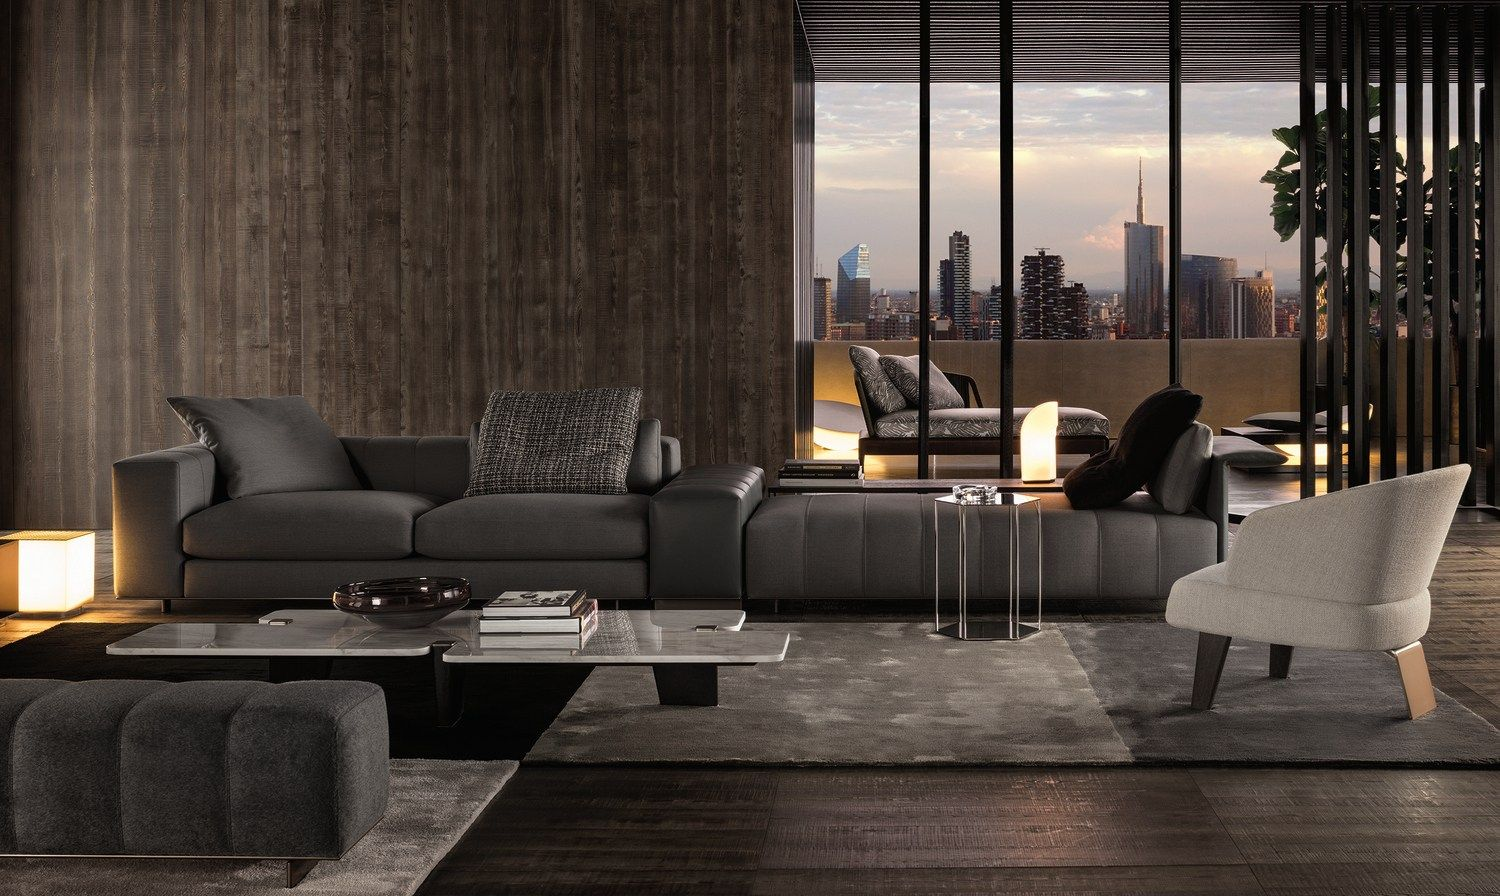 Urban Sofa Barneveld 2019 的sofa Freeman Seating System By Minotti Design Rodolfo